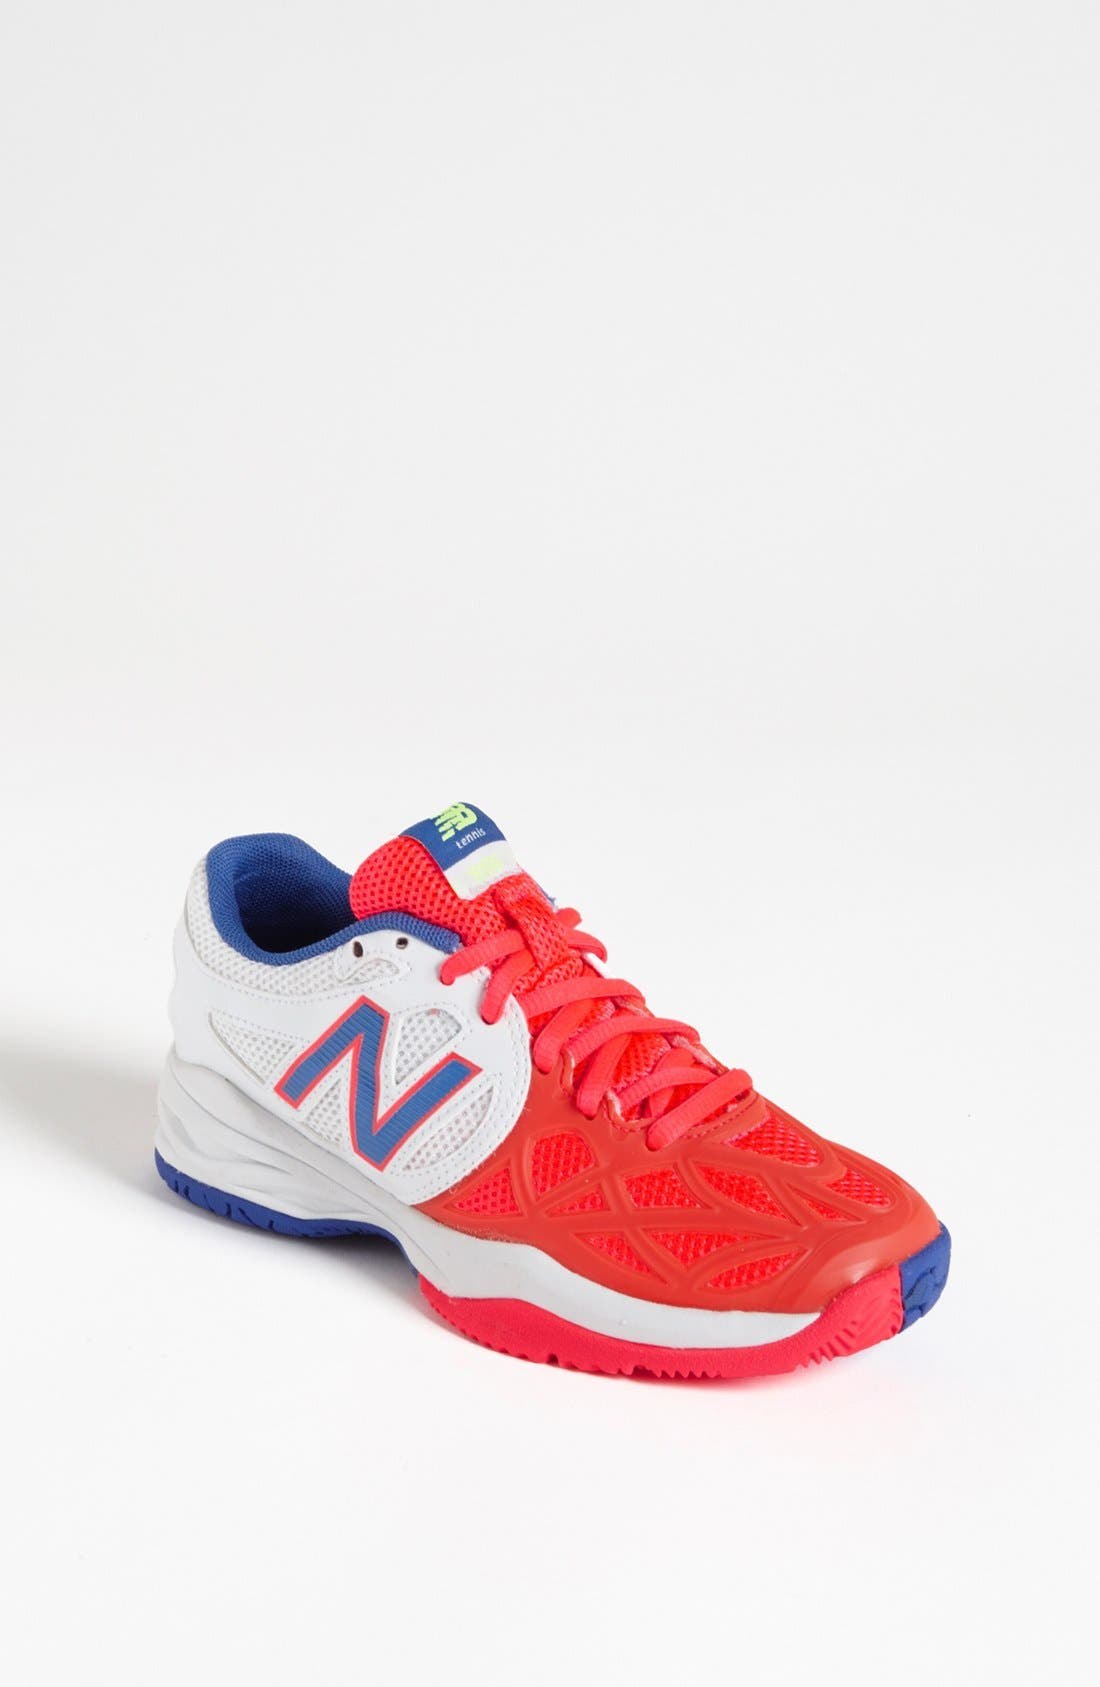 Alternate Image 1 Selected - New Balance Tennis Shoe (Toddler, Little Kid & Big Kid)